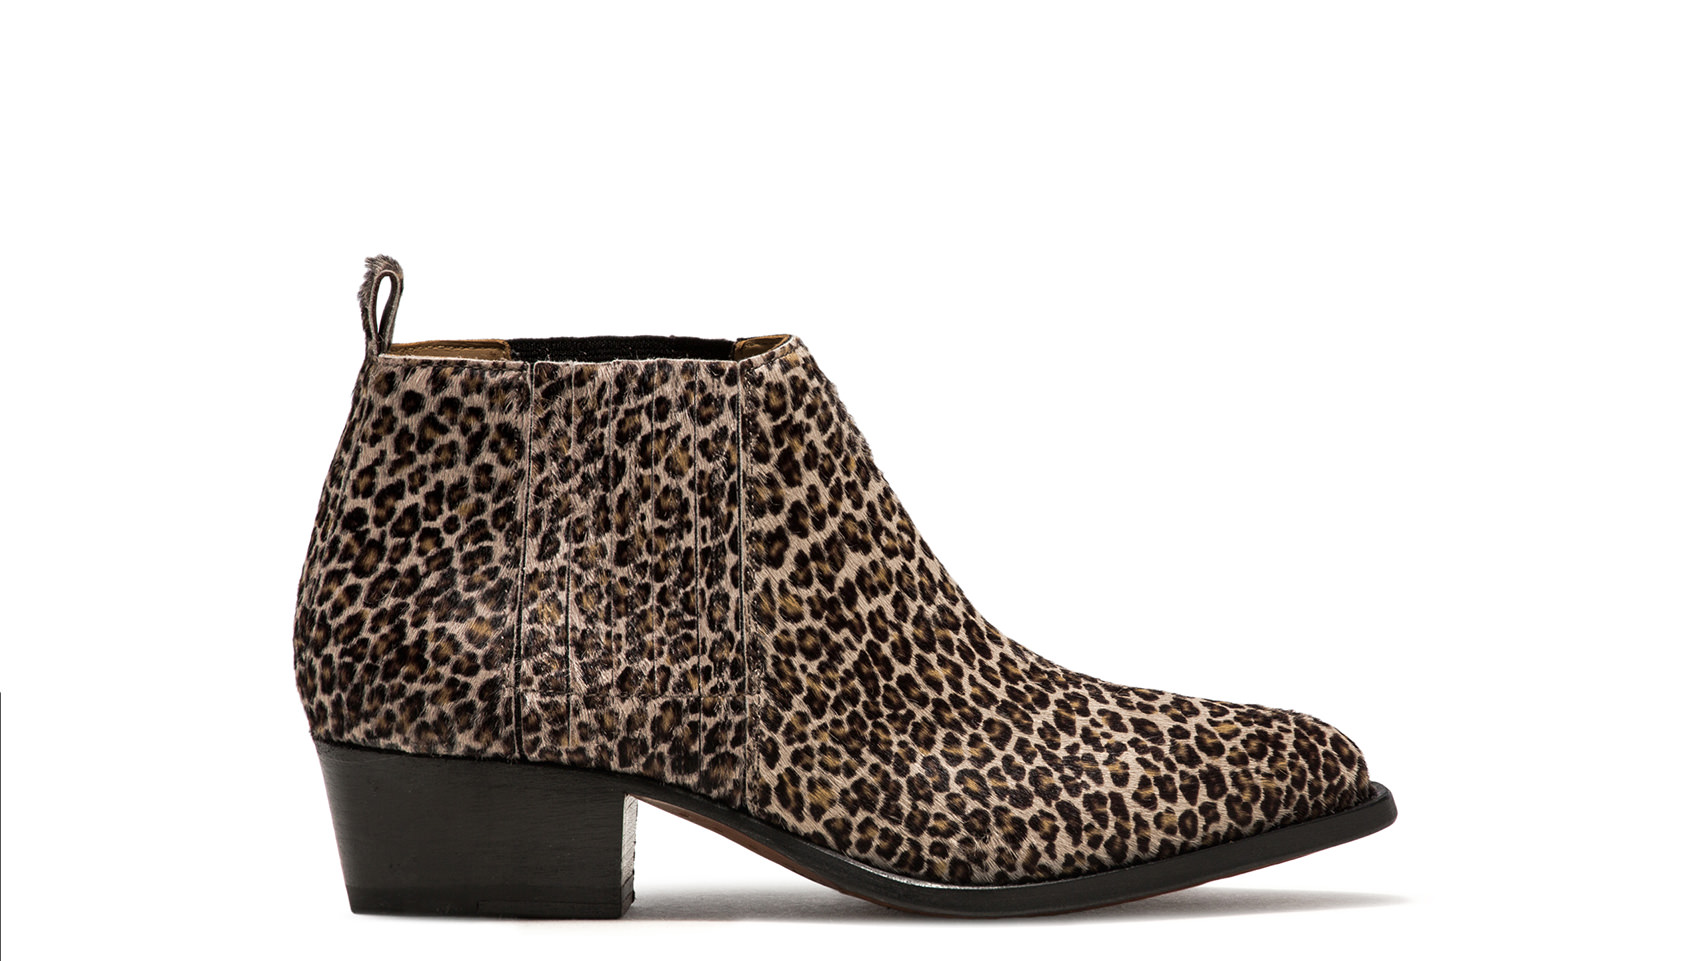 BUTTERO: LEOPARD PRINTED PONYSKIN TRES LOW TOP DURANGO BOOTS